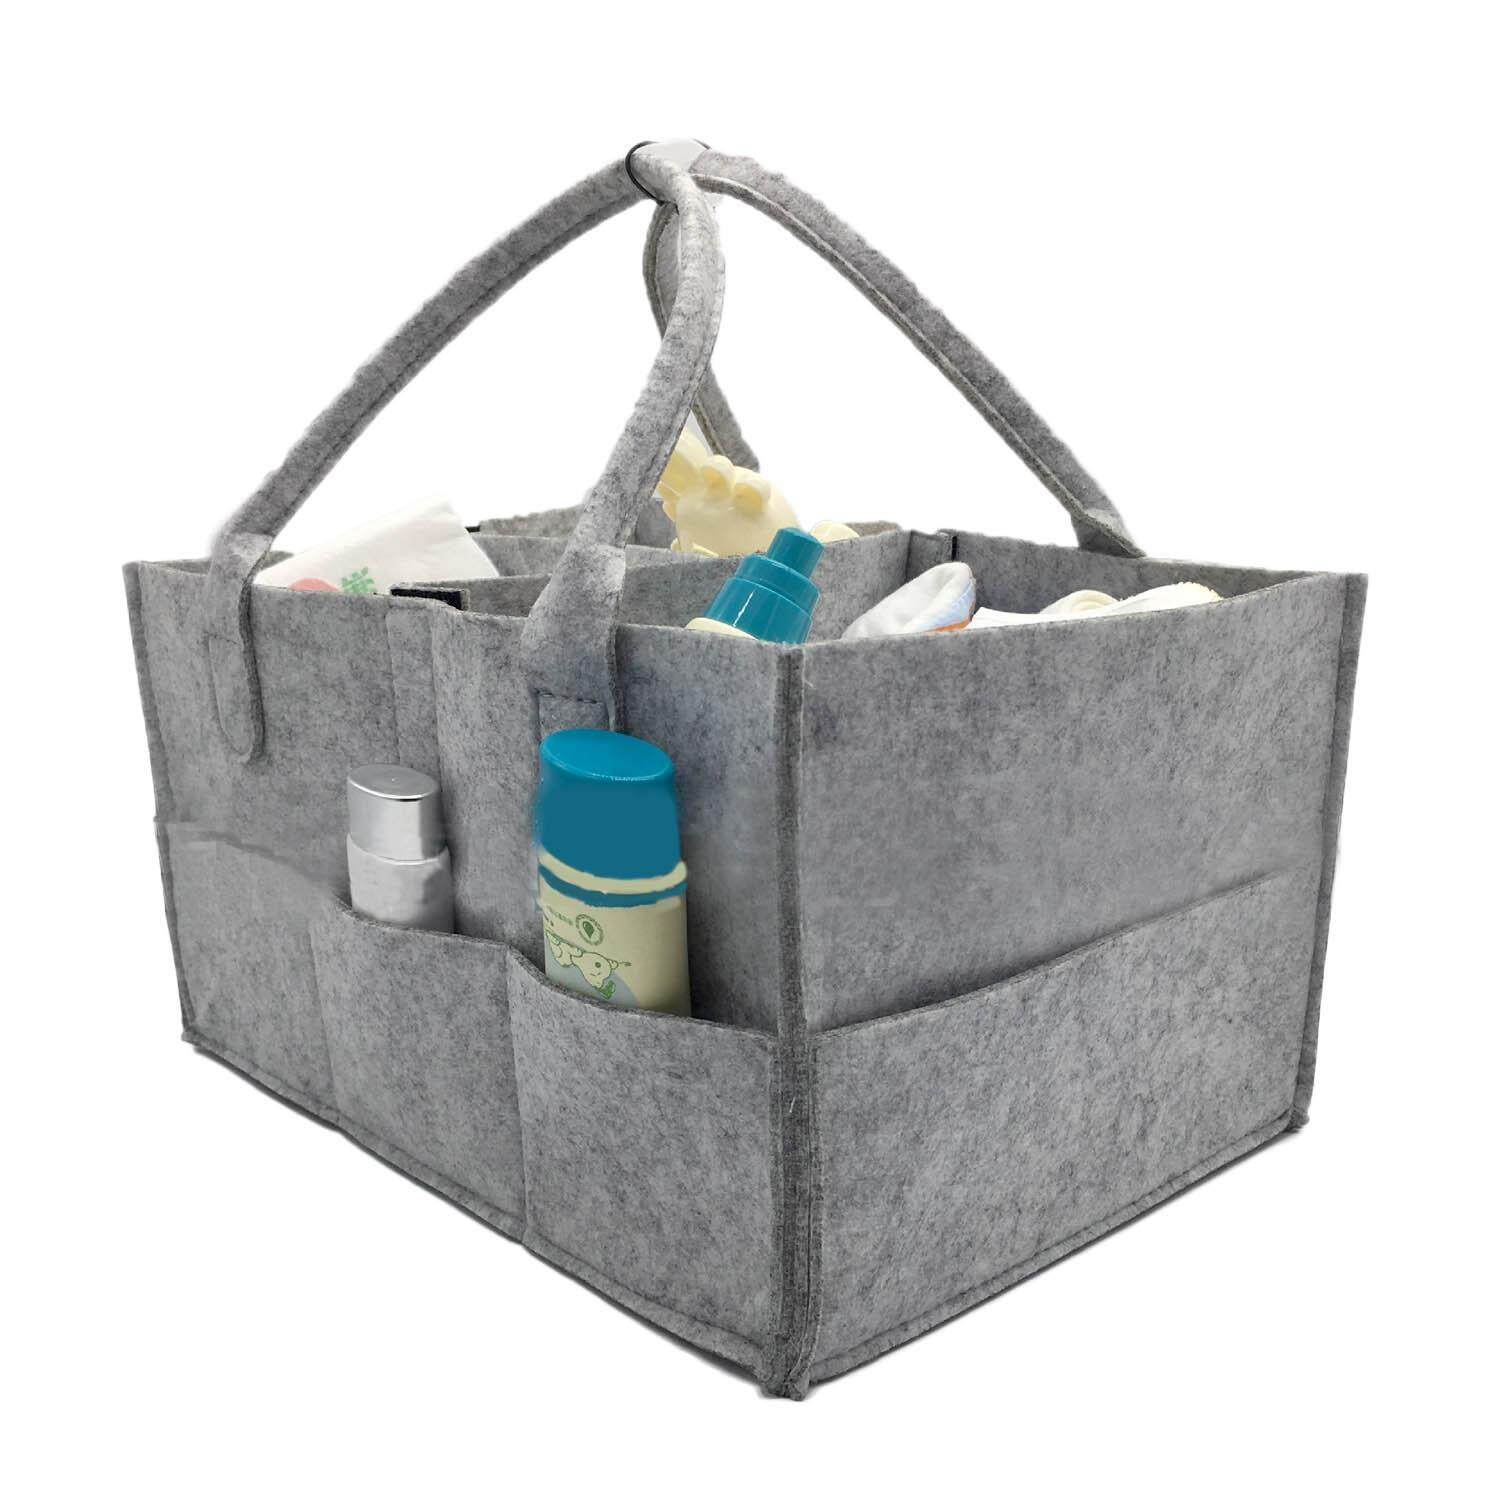 Baby Diaper Caddy Organizer Portable Durable Carrier Felt Handbag Storage Tote Bag with Handle for Toys Cosmetic Makeup Magazine - intl